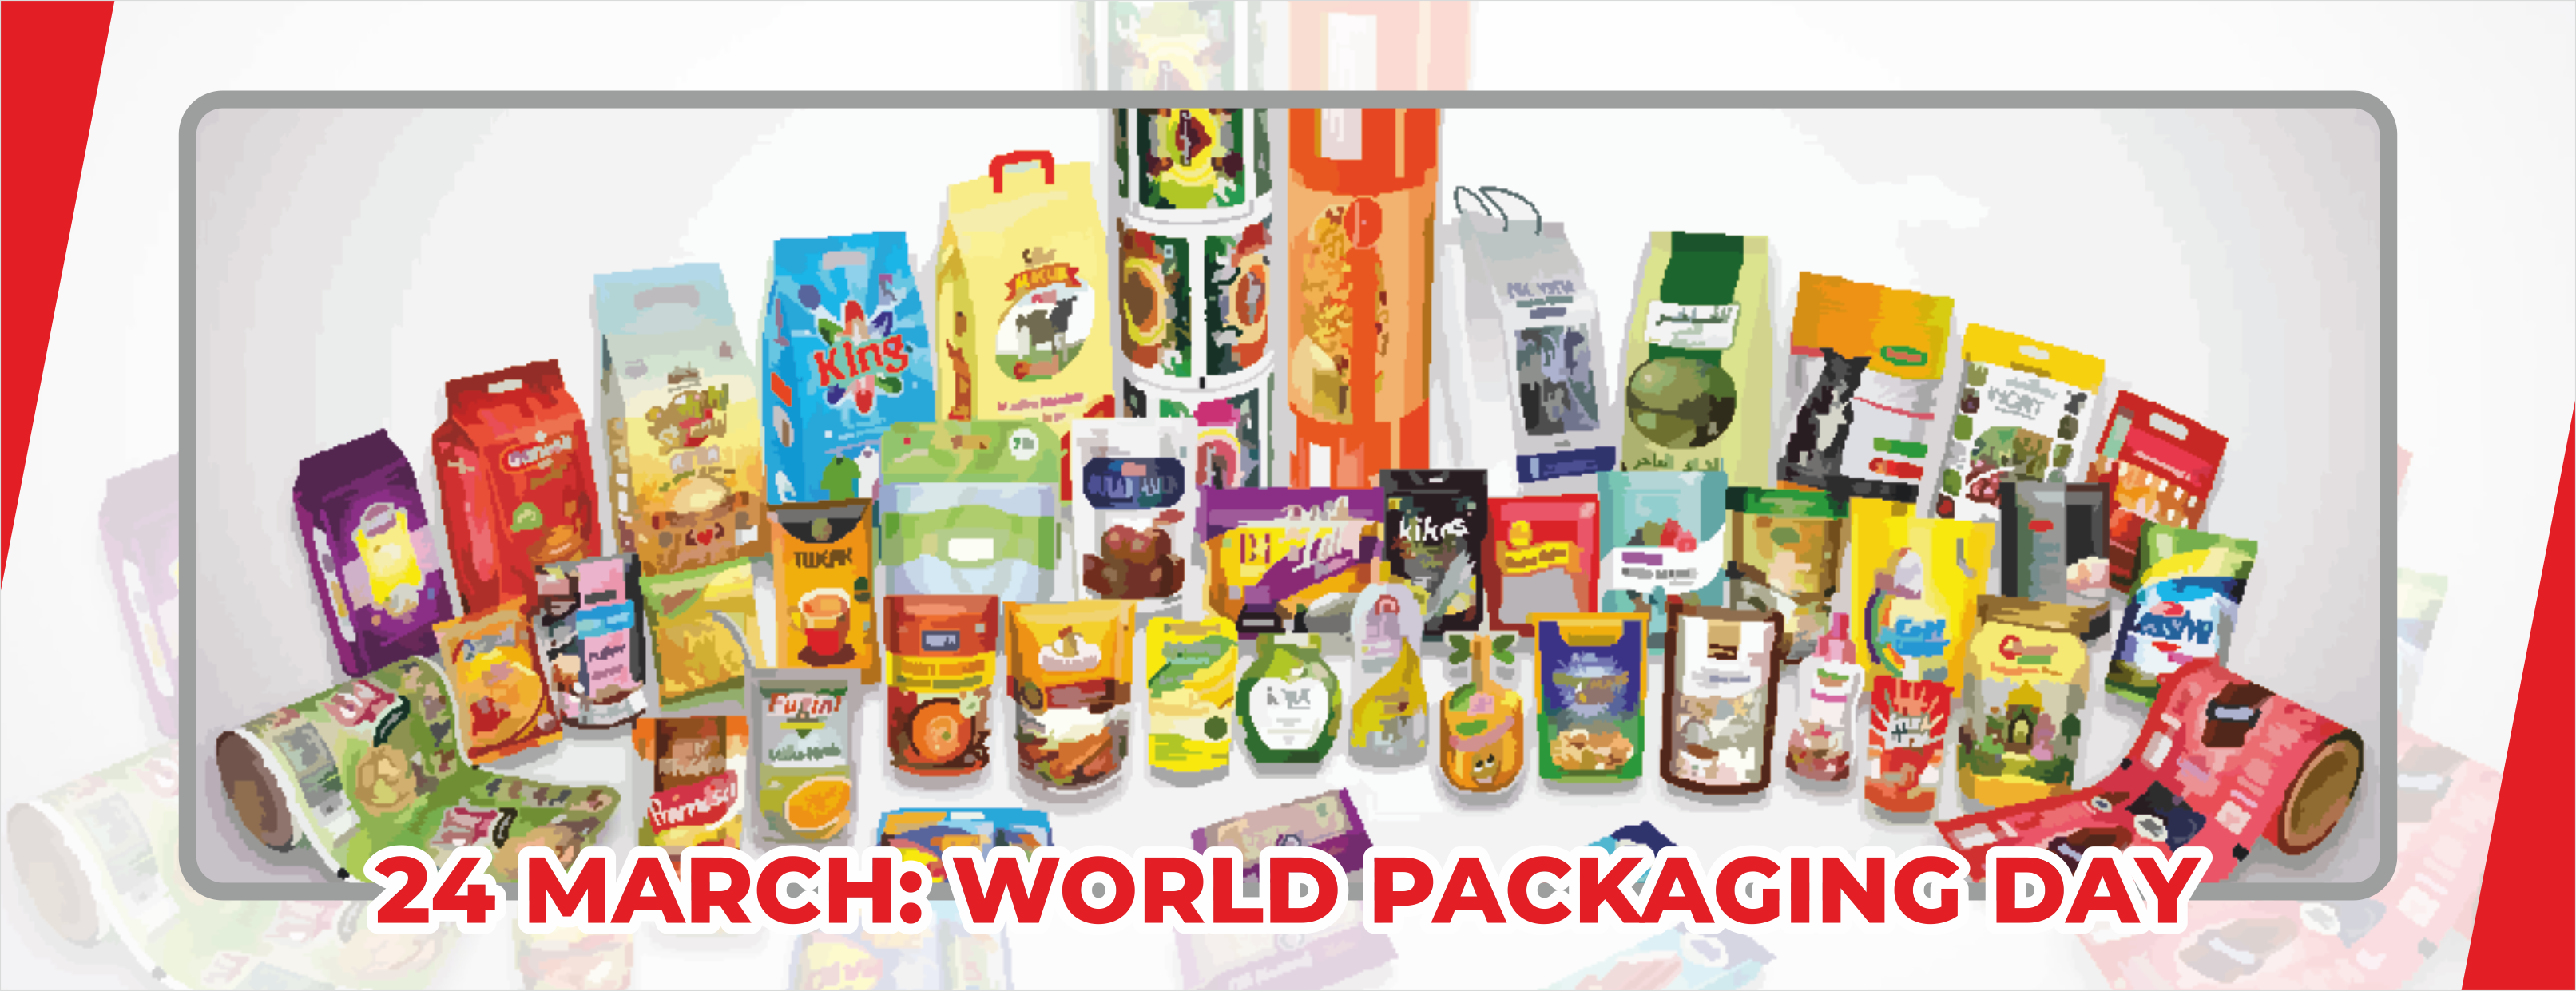 World Packaging Day 2021